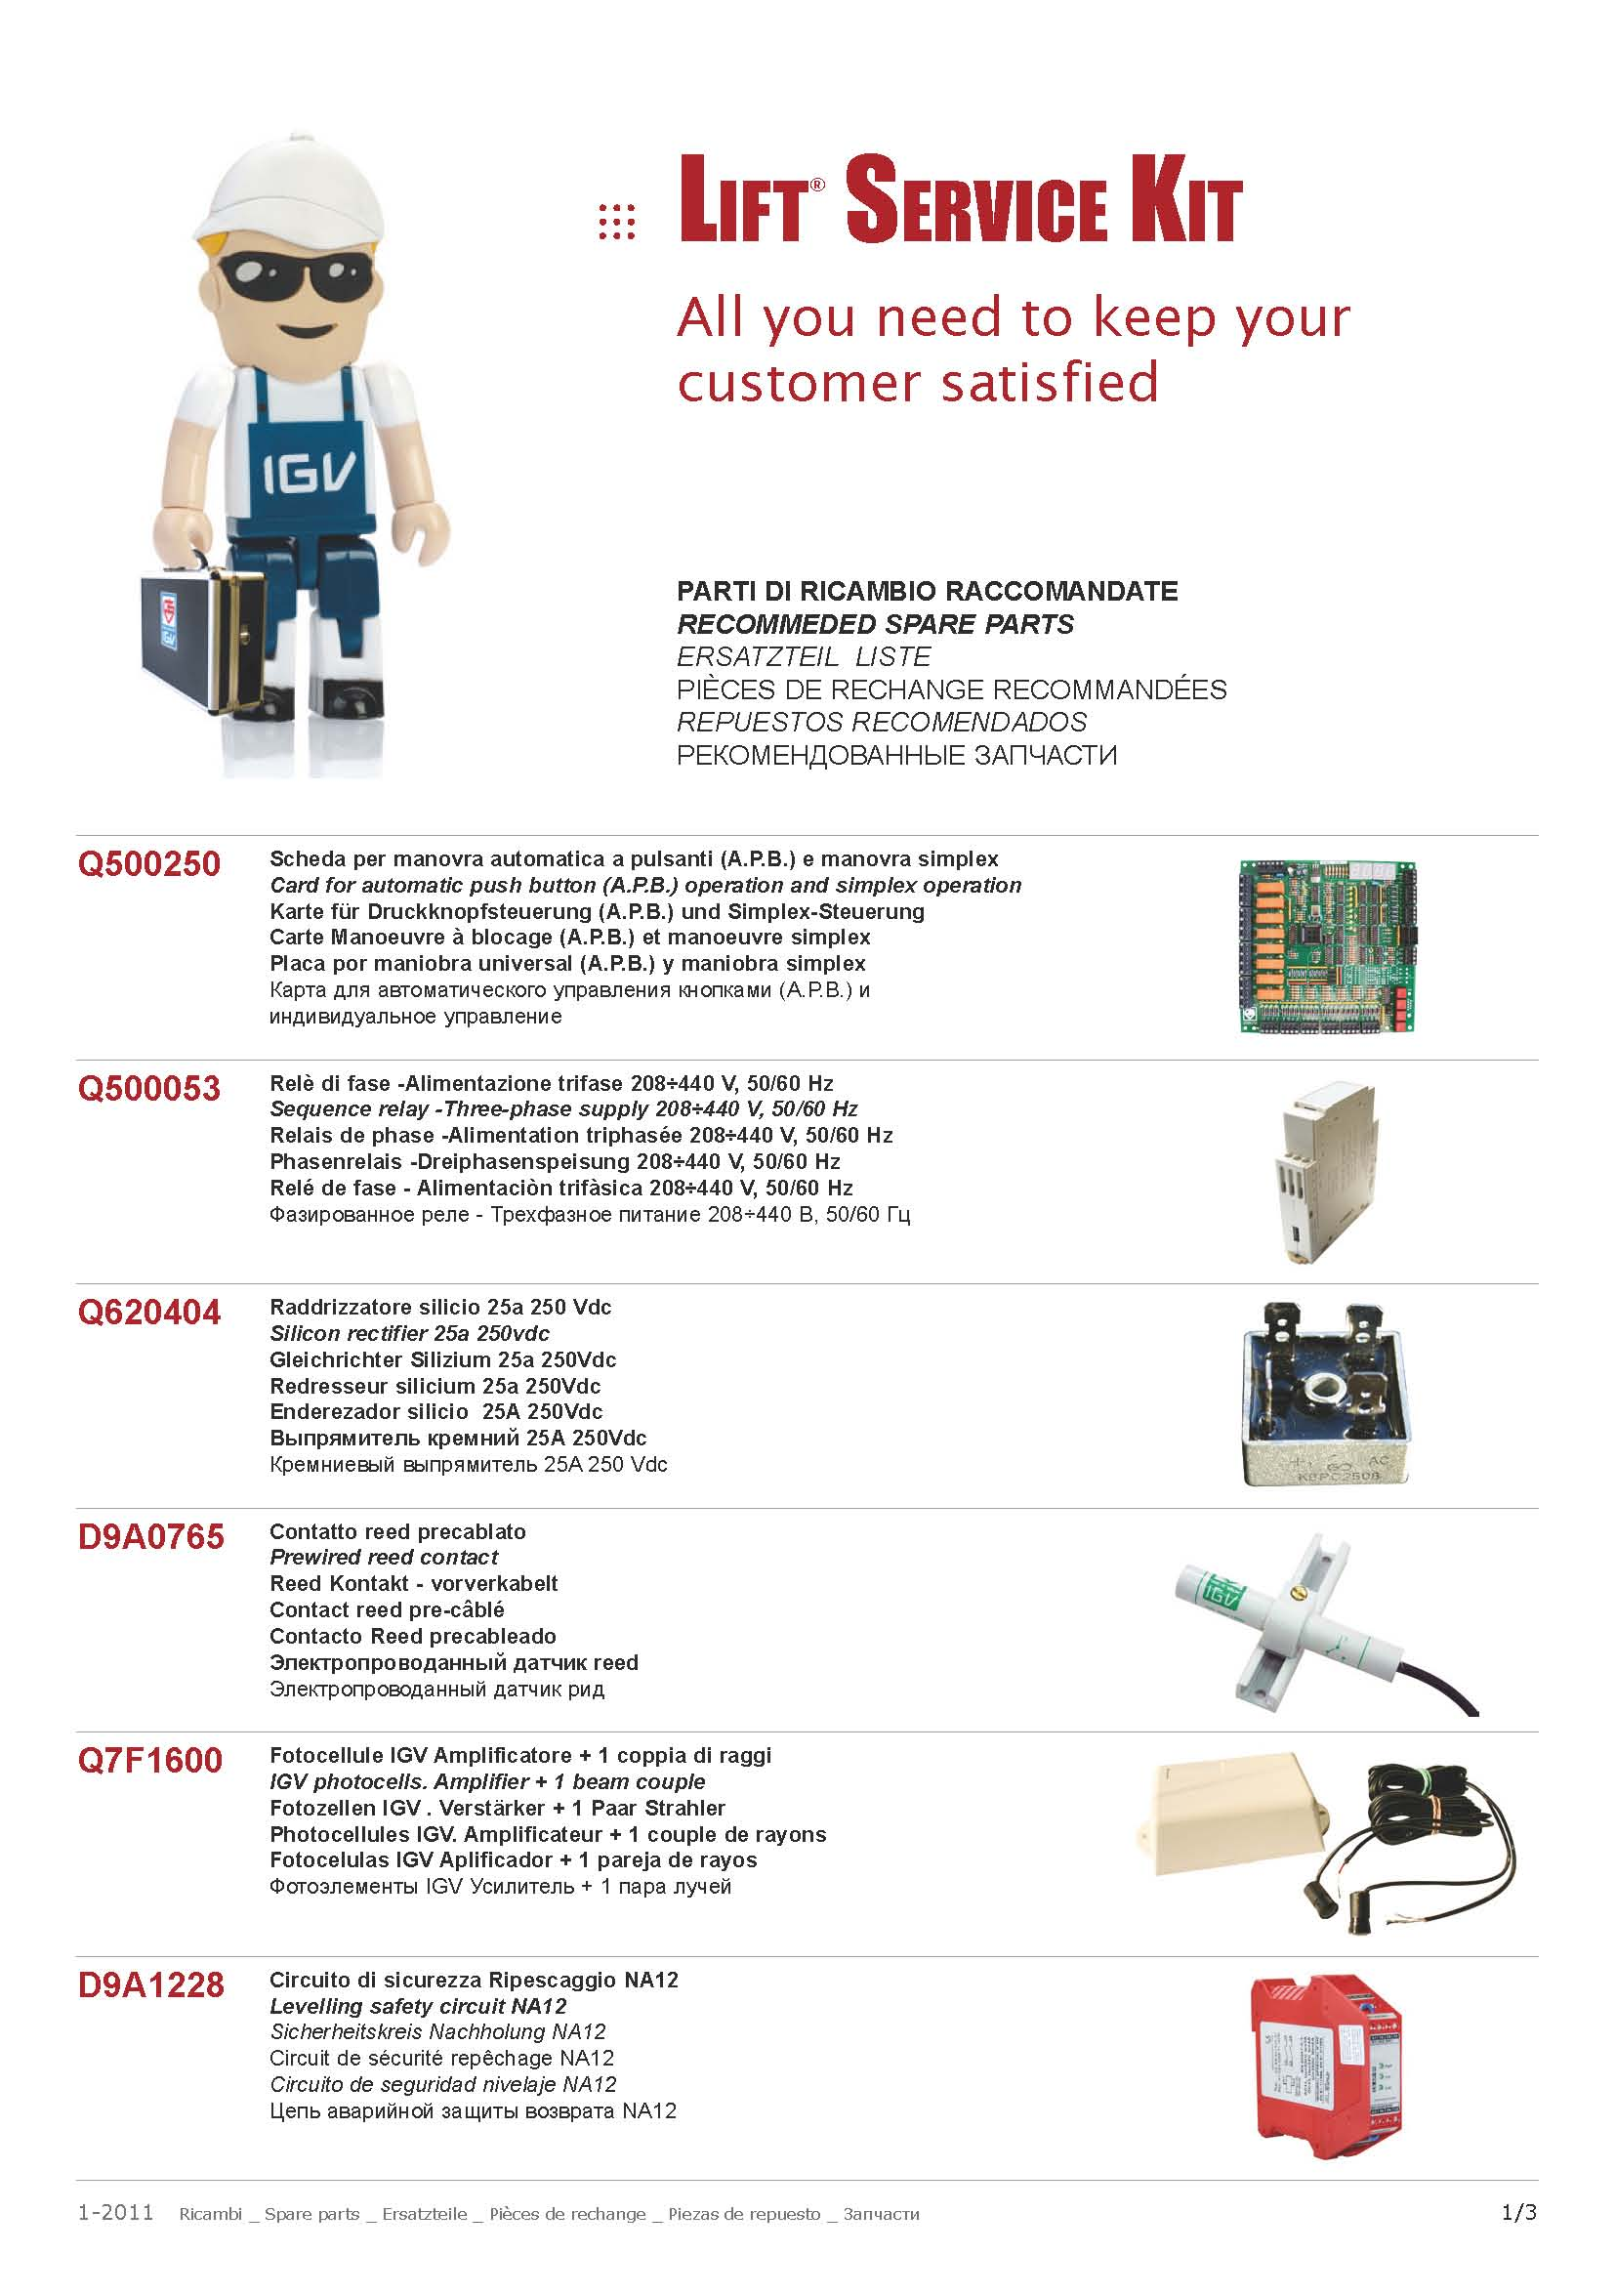 IGV-Lift-Service-Kit_Pagina_1